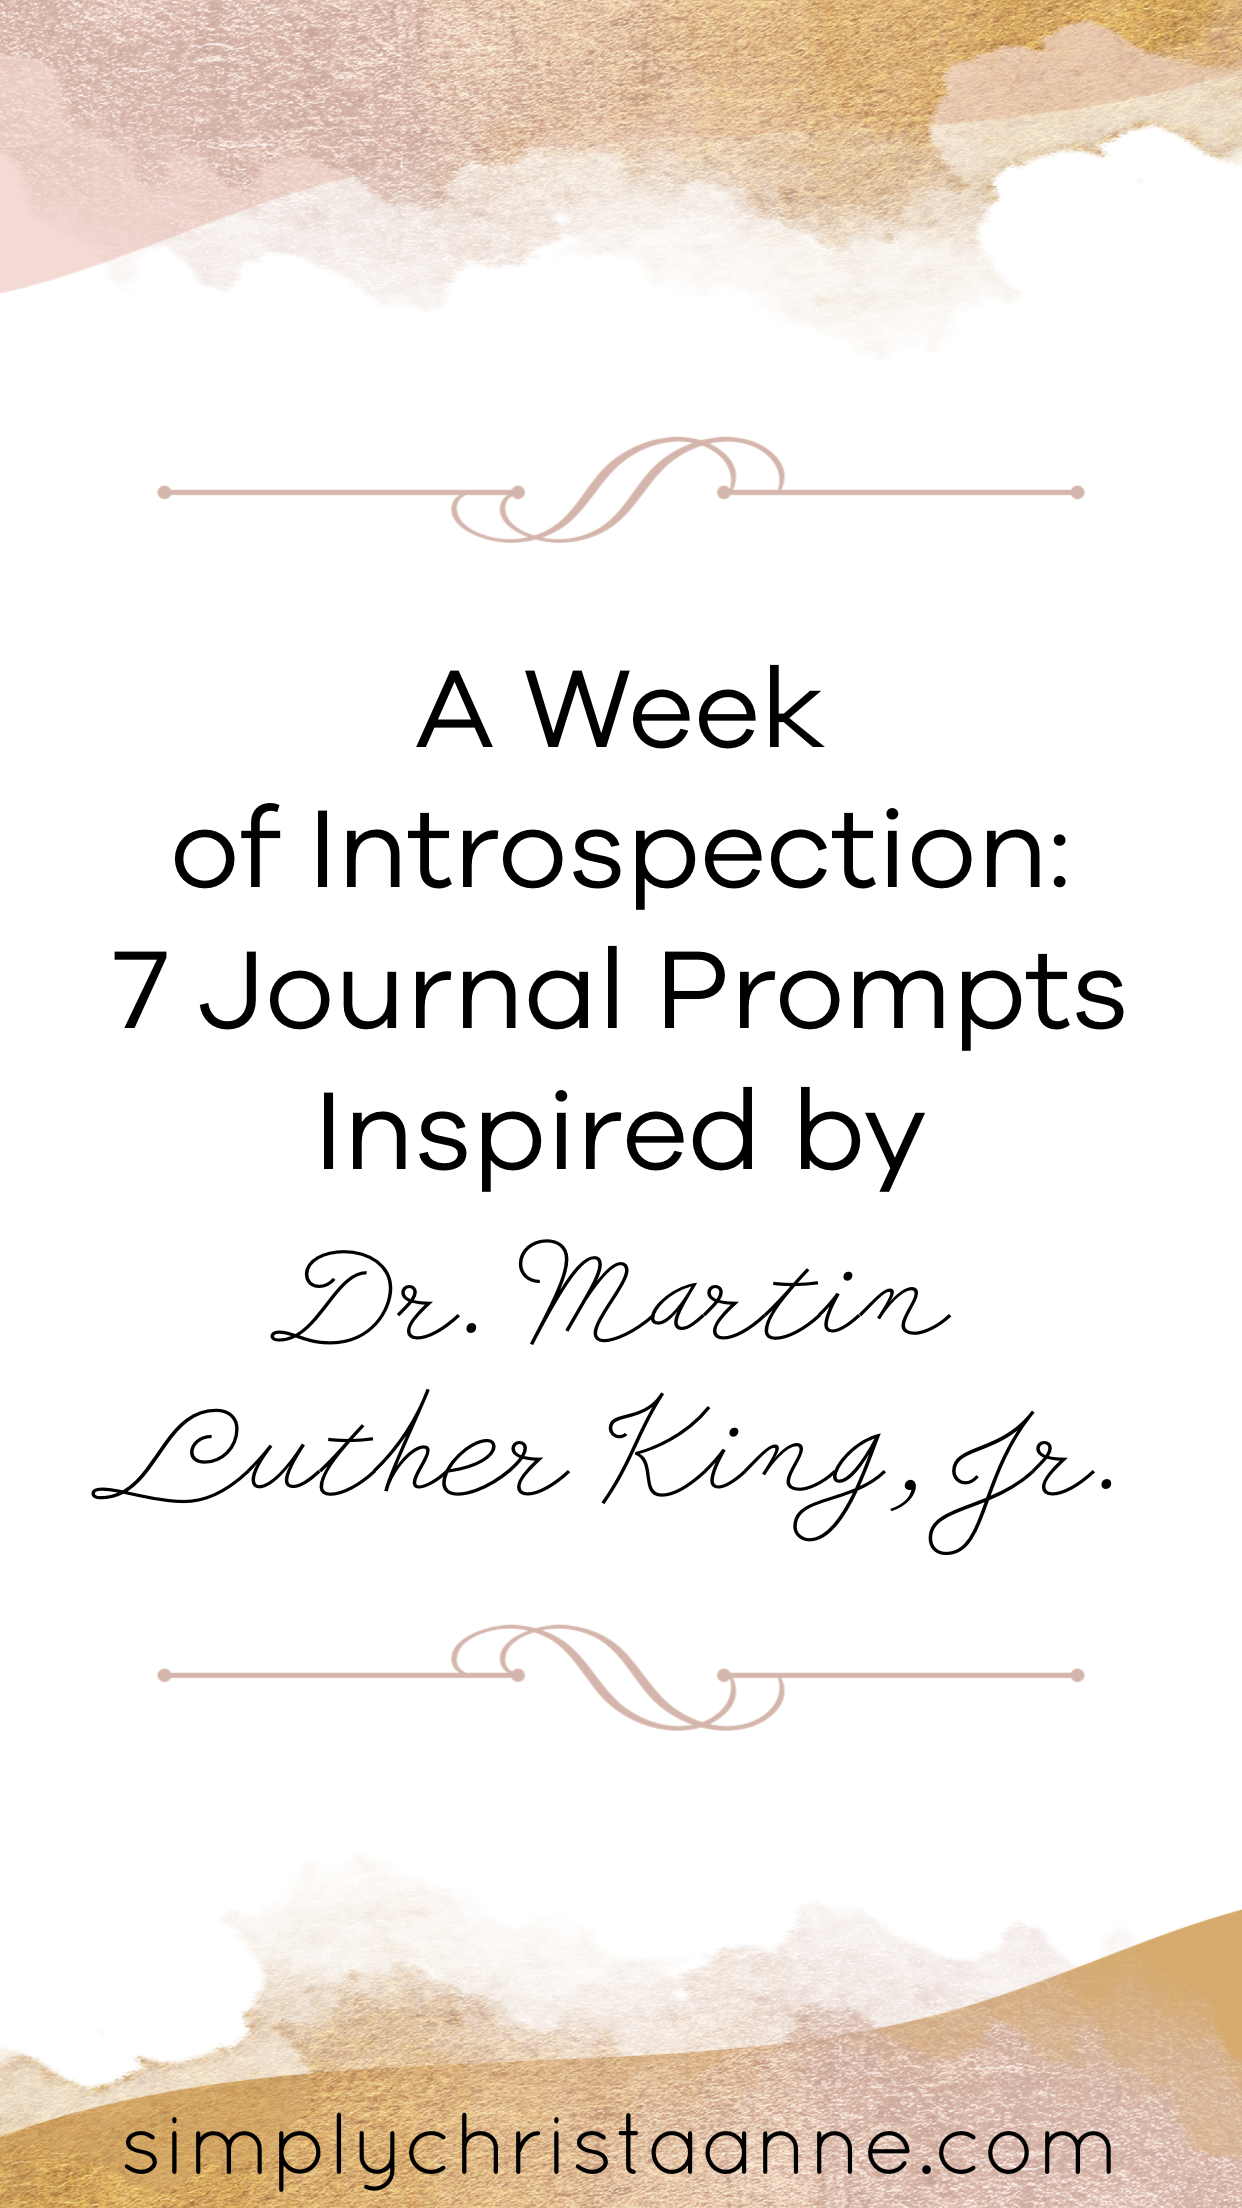 A Week of Introspection: 7 Journal Prompts Inspired by Dr. Martin Luther King, Jr.